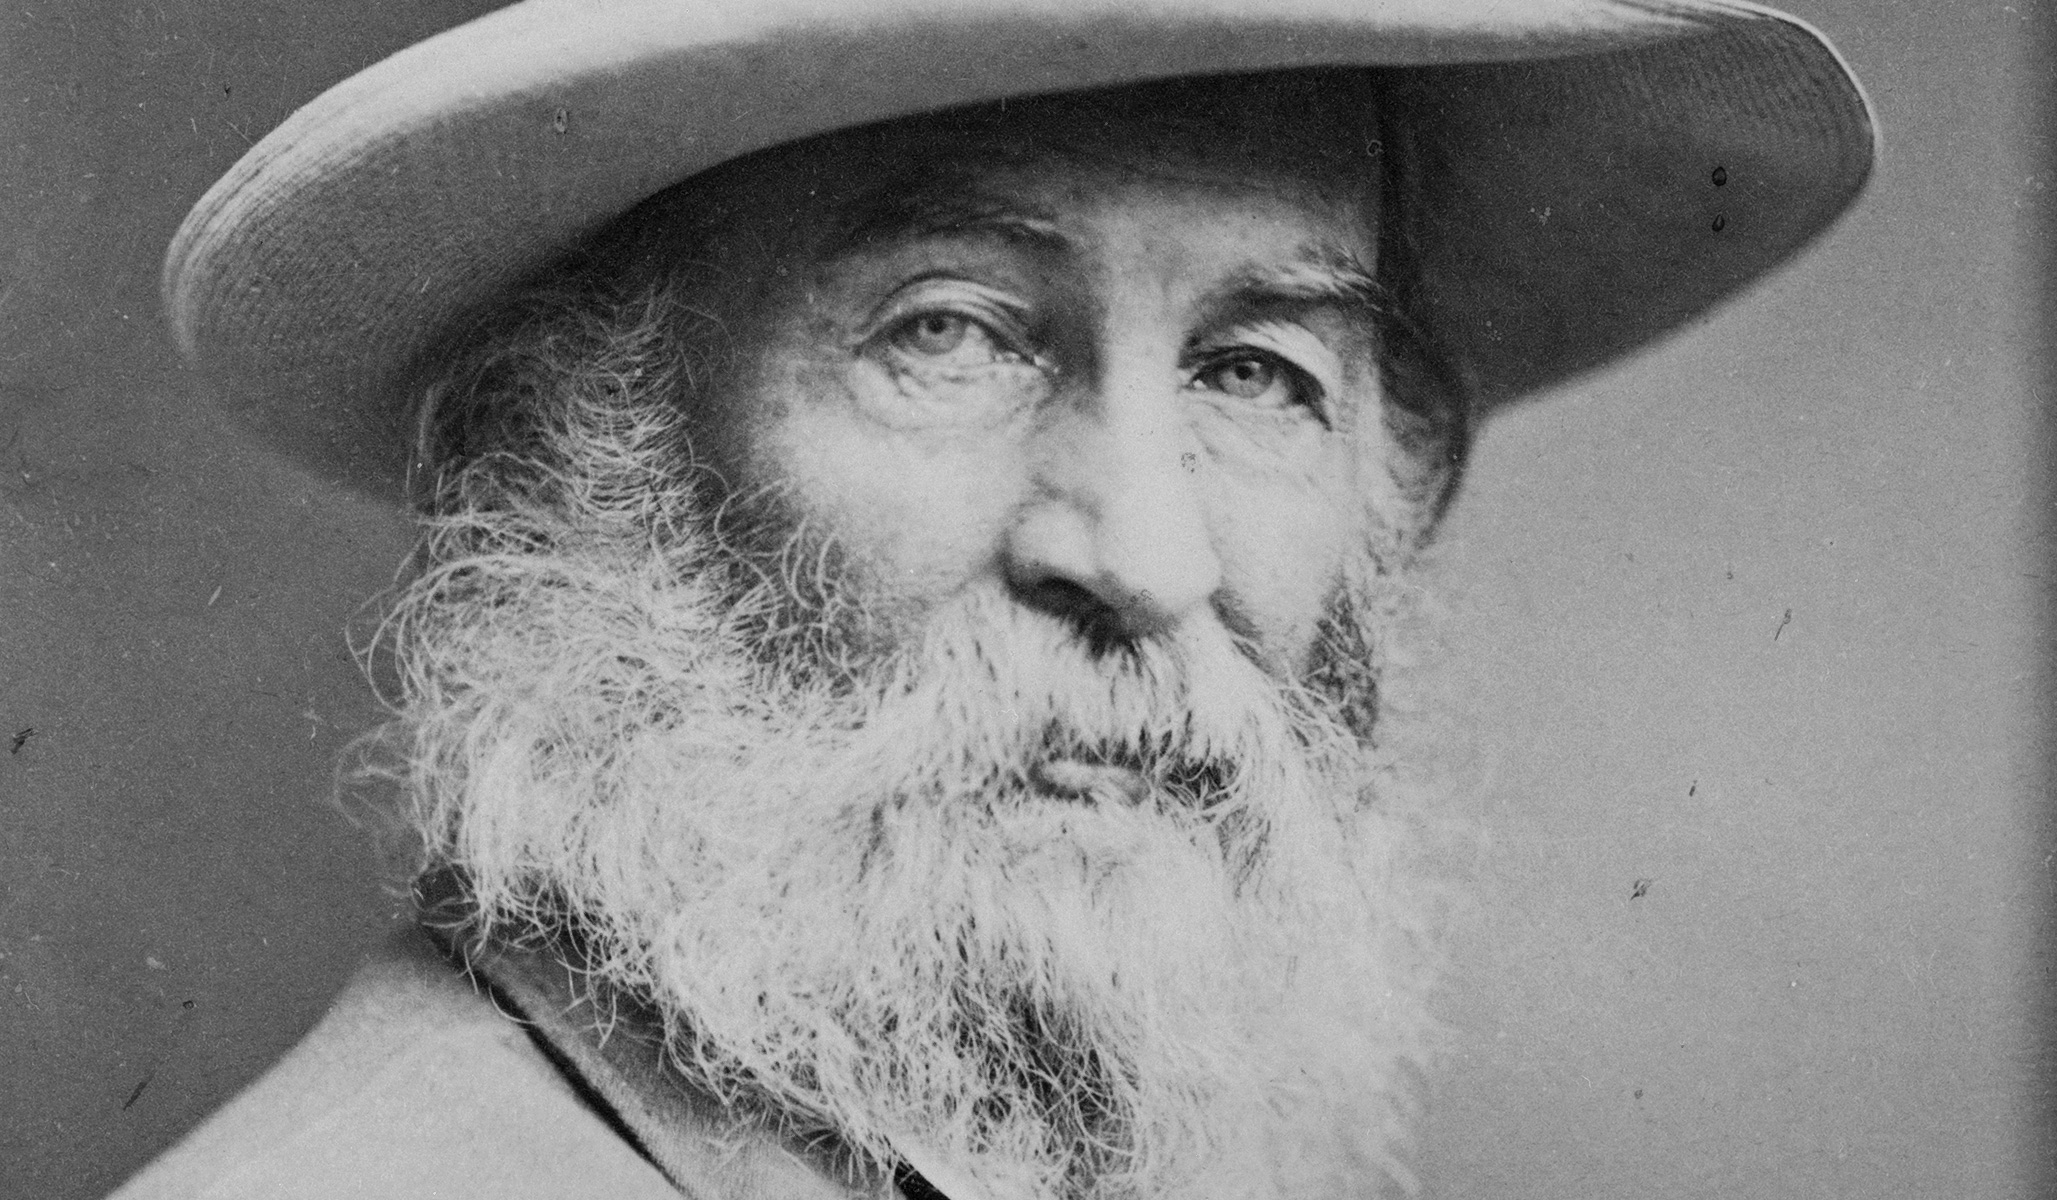 Walt Whitman, an American